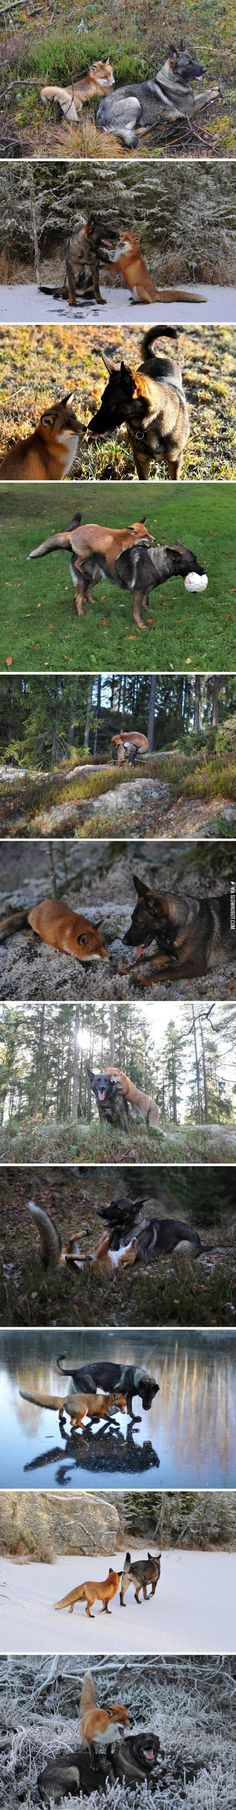 """Tinni the dog has developed an amazing friendship with this wild fox called Snusen (aka Sniffer). Tinni's owner, Torgeir Berge of Norway, has taken many photos and video of the pair playing together. Berge has collaborated with author, Berit Helberg, to publish the book """"Snusen og Tinni"""" about these beautiful friends. It has also been published in English as """"Sniffer and Tinni"""". http://www.dogheirs.com/misst/posts/4622-amazing-photos-of-dog-and-wild-fox-playing-in-the-woods"""